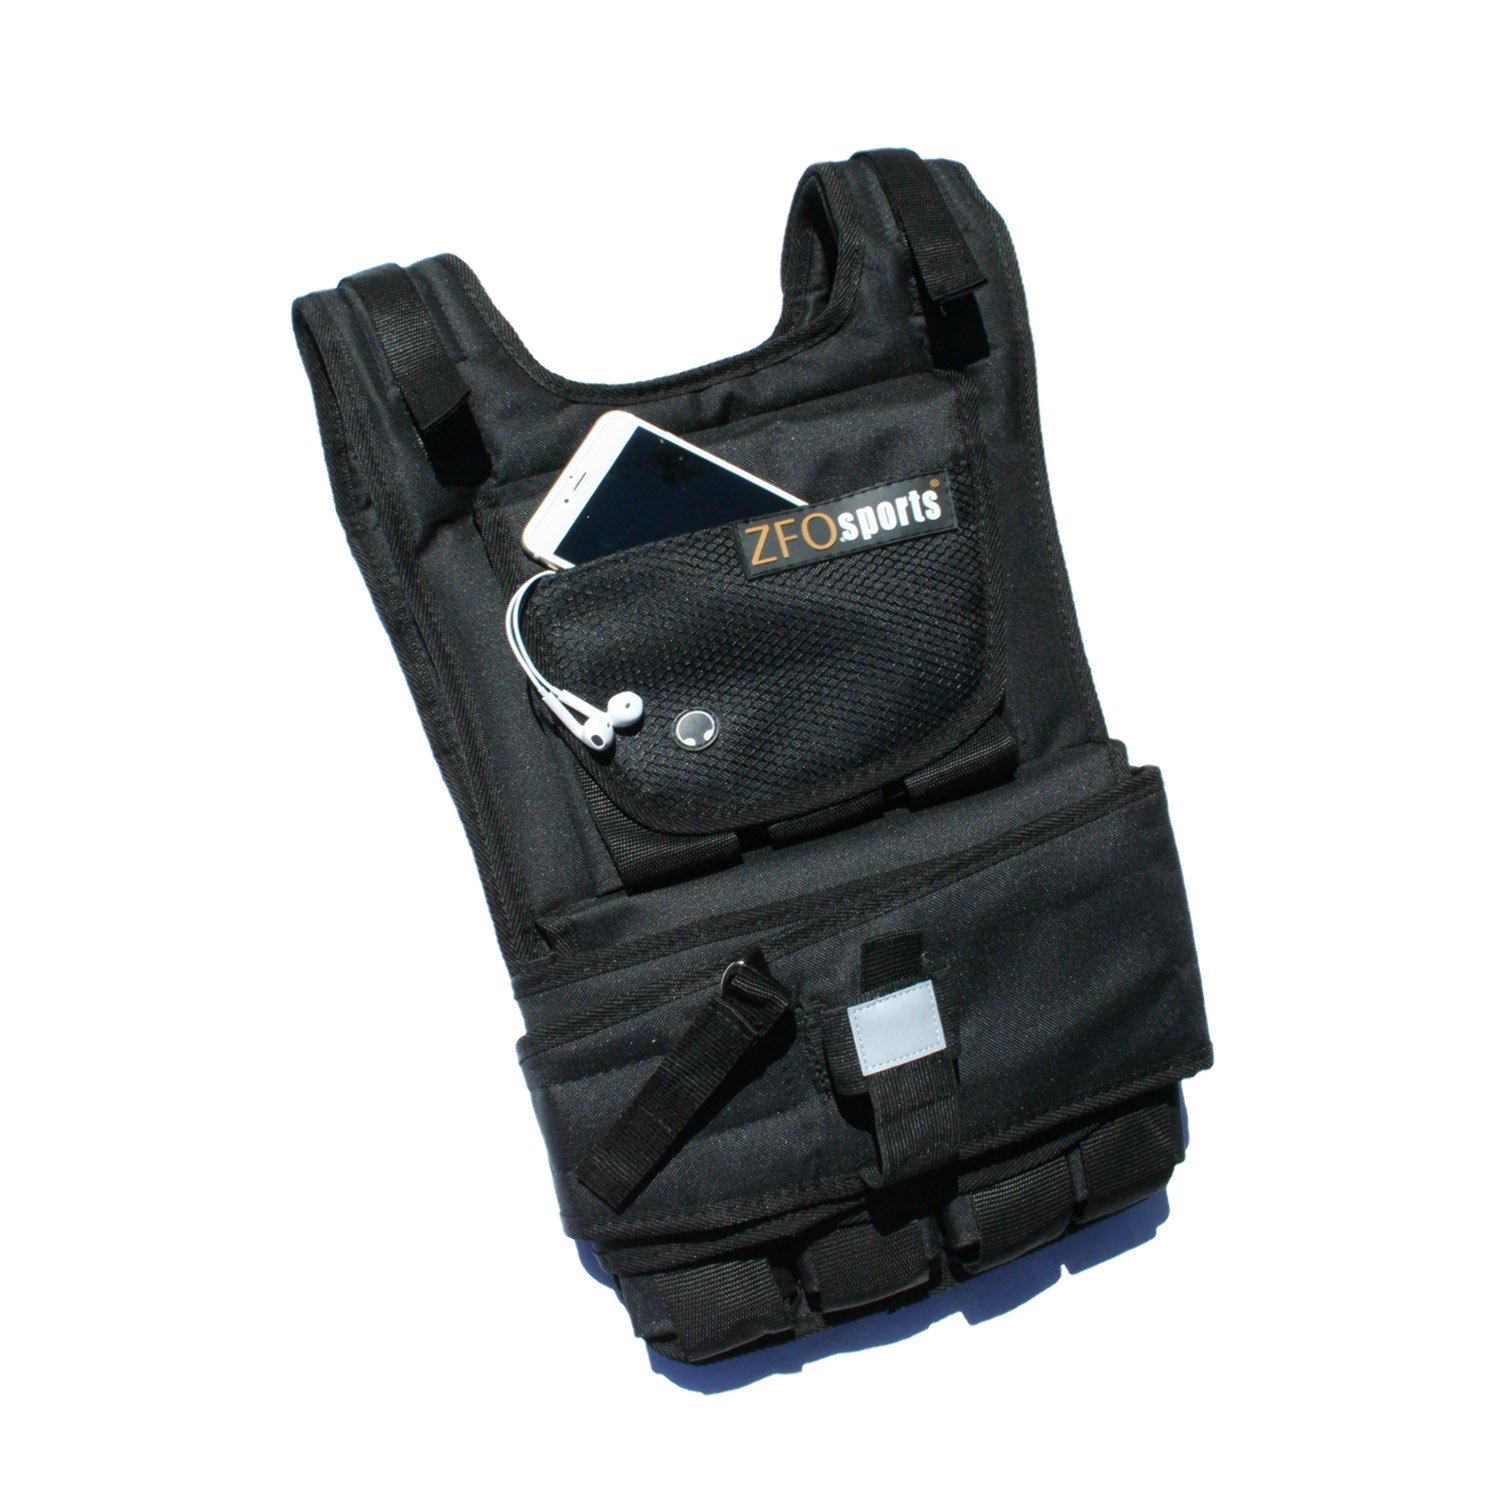 ZFOsports Weighted Vest 40lbs/60lbs/80lbs (60lbs) by ZFOsports (Image #2)